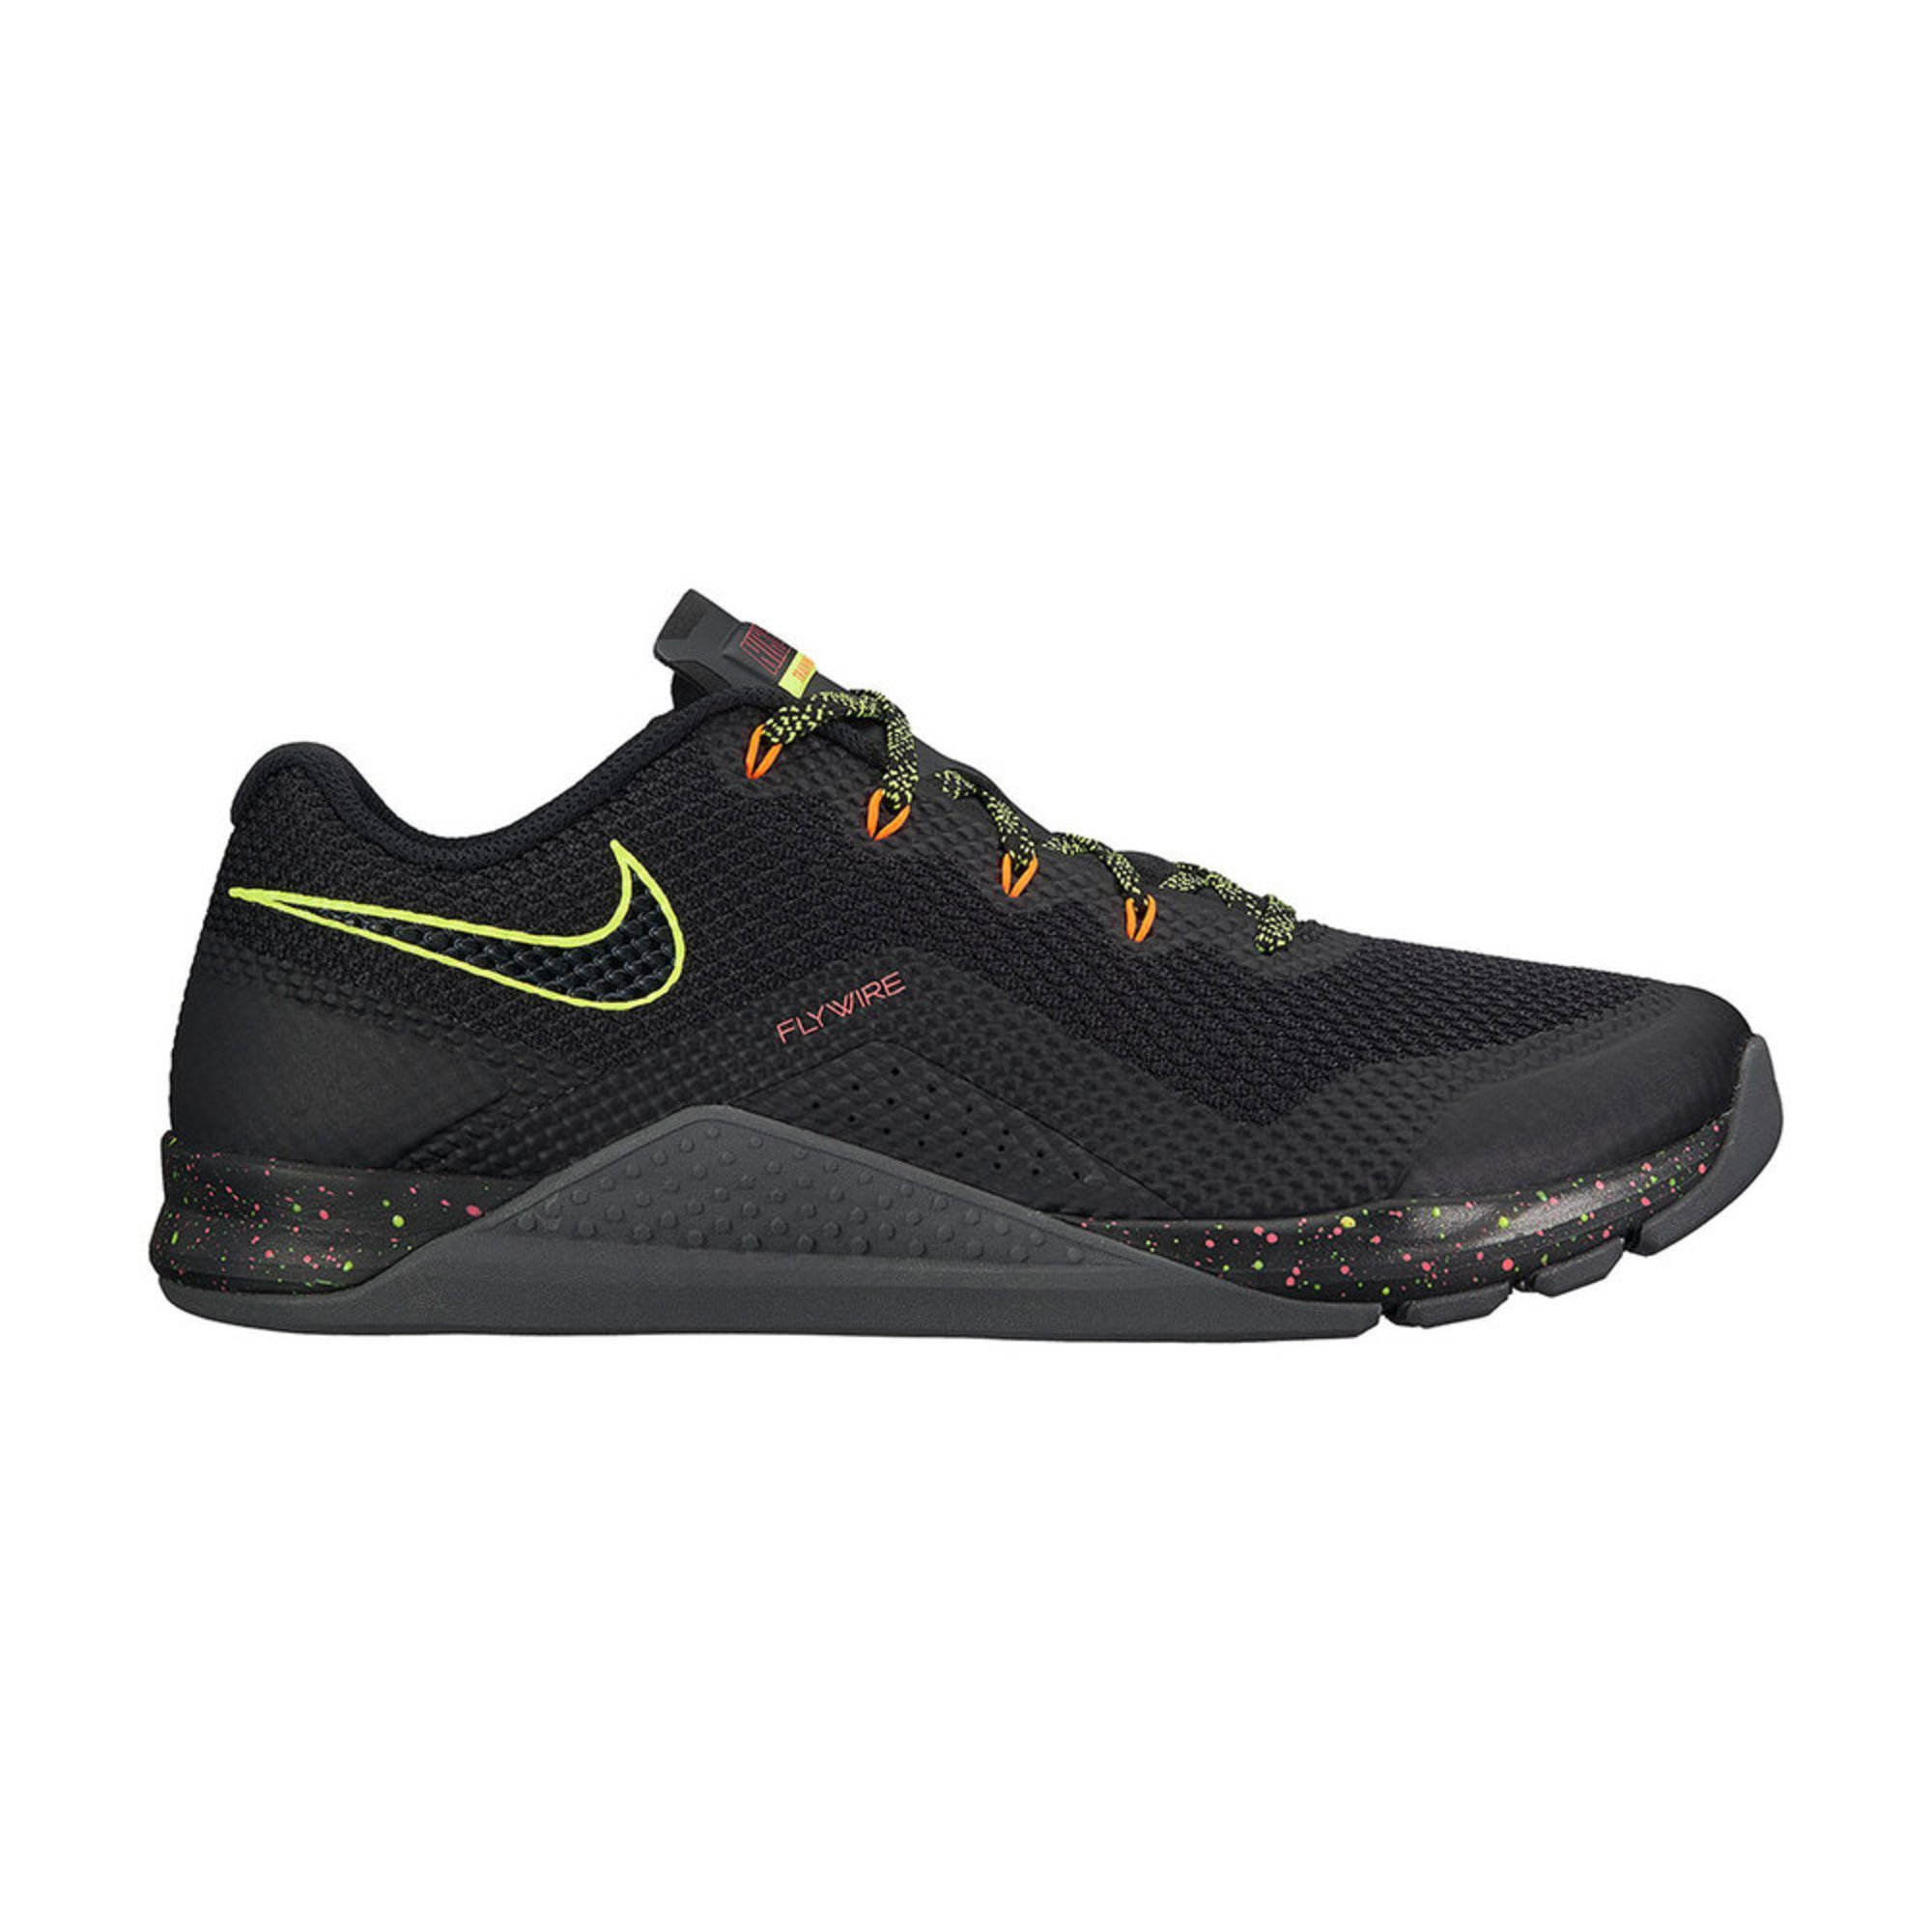 Nike. Nike Metcon Repper DSX Men's Crossfit Shoe - Black / Volt / Hyper  Crimson / Hot Punch